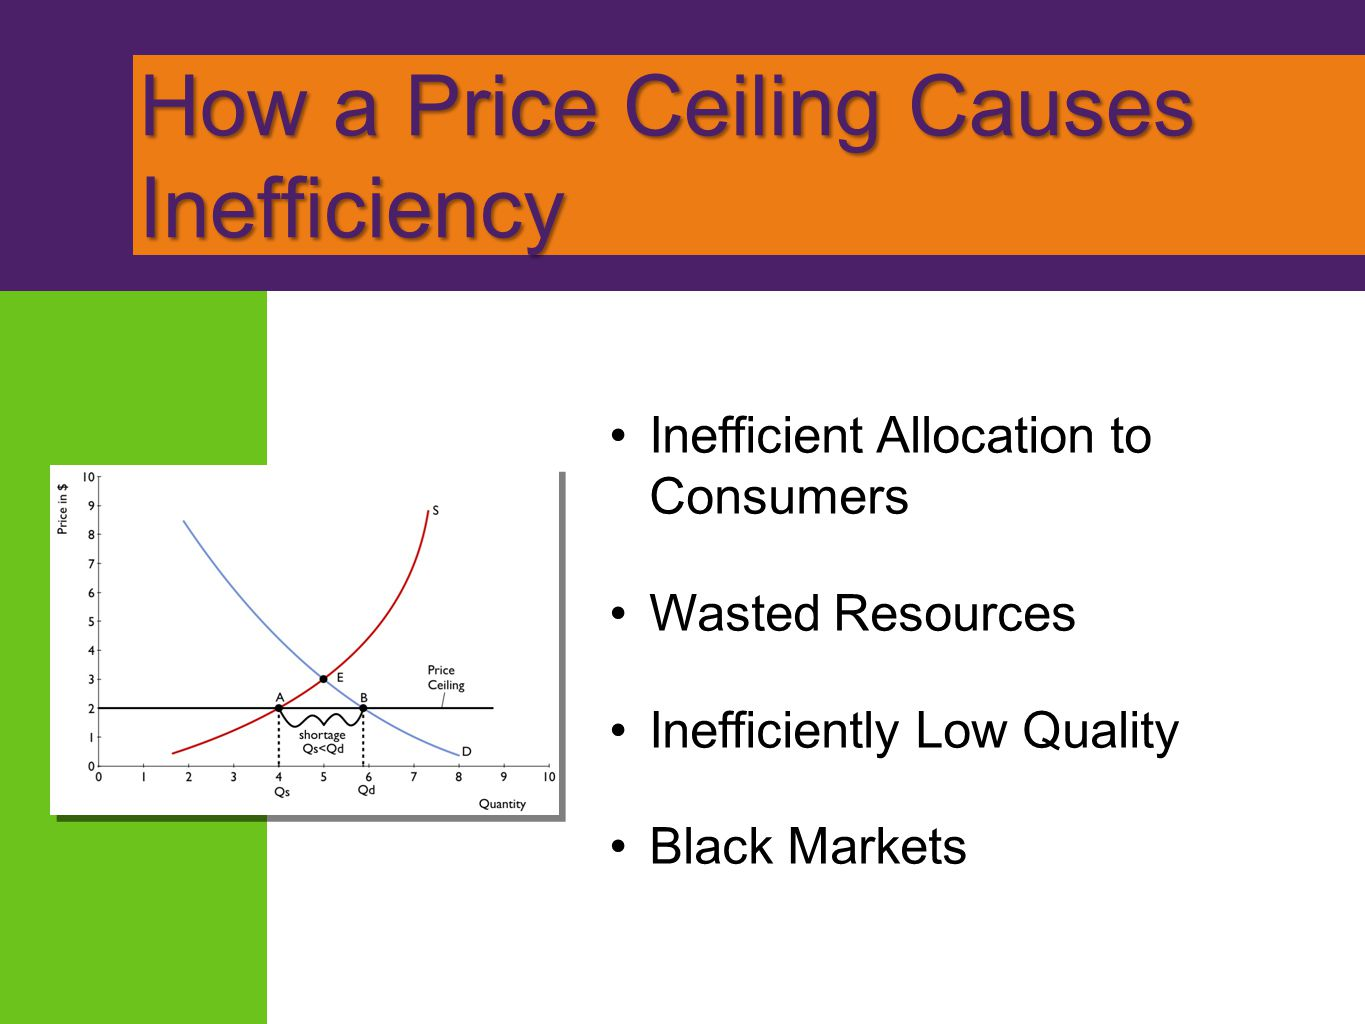 How a Price Ceiling Causes Inefficiency